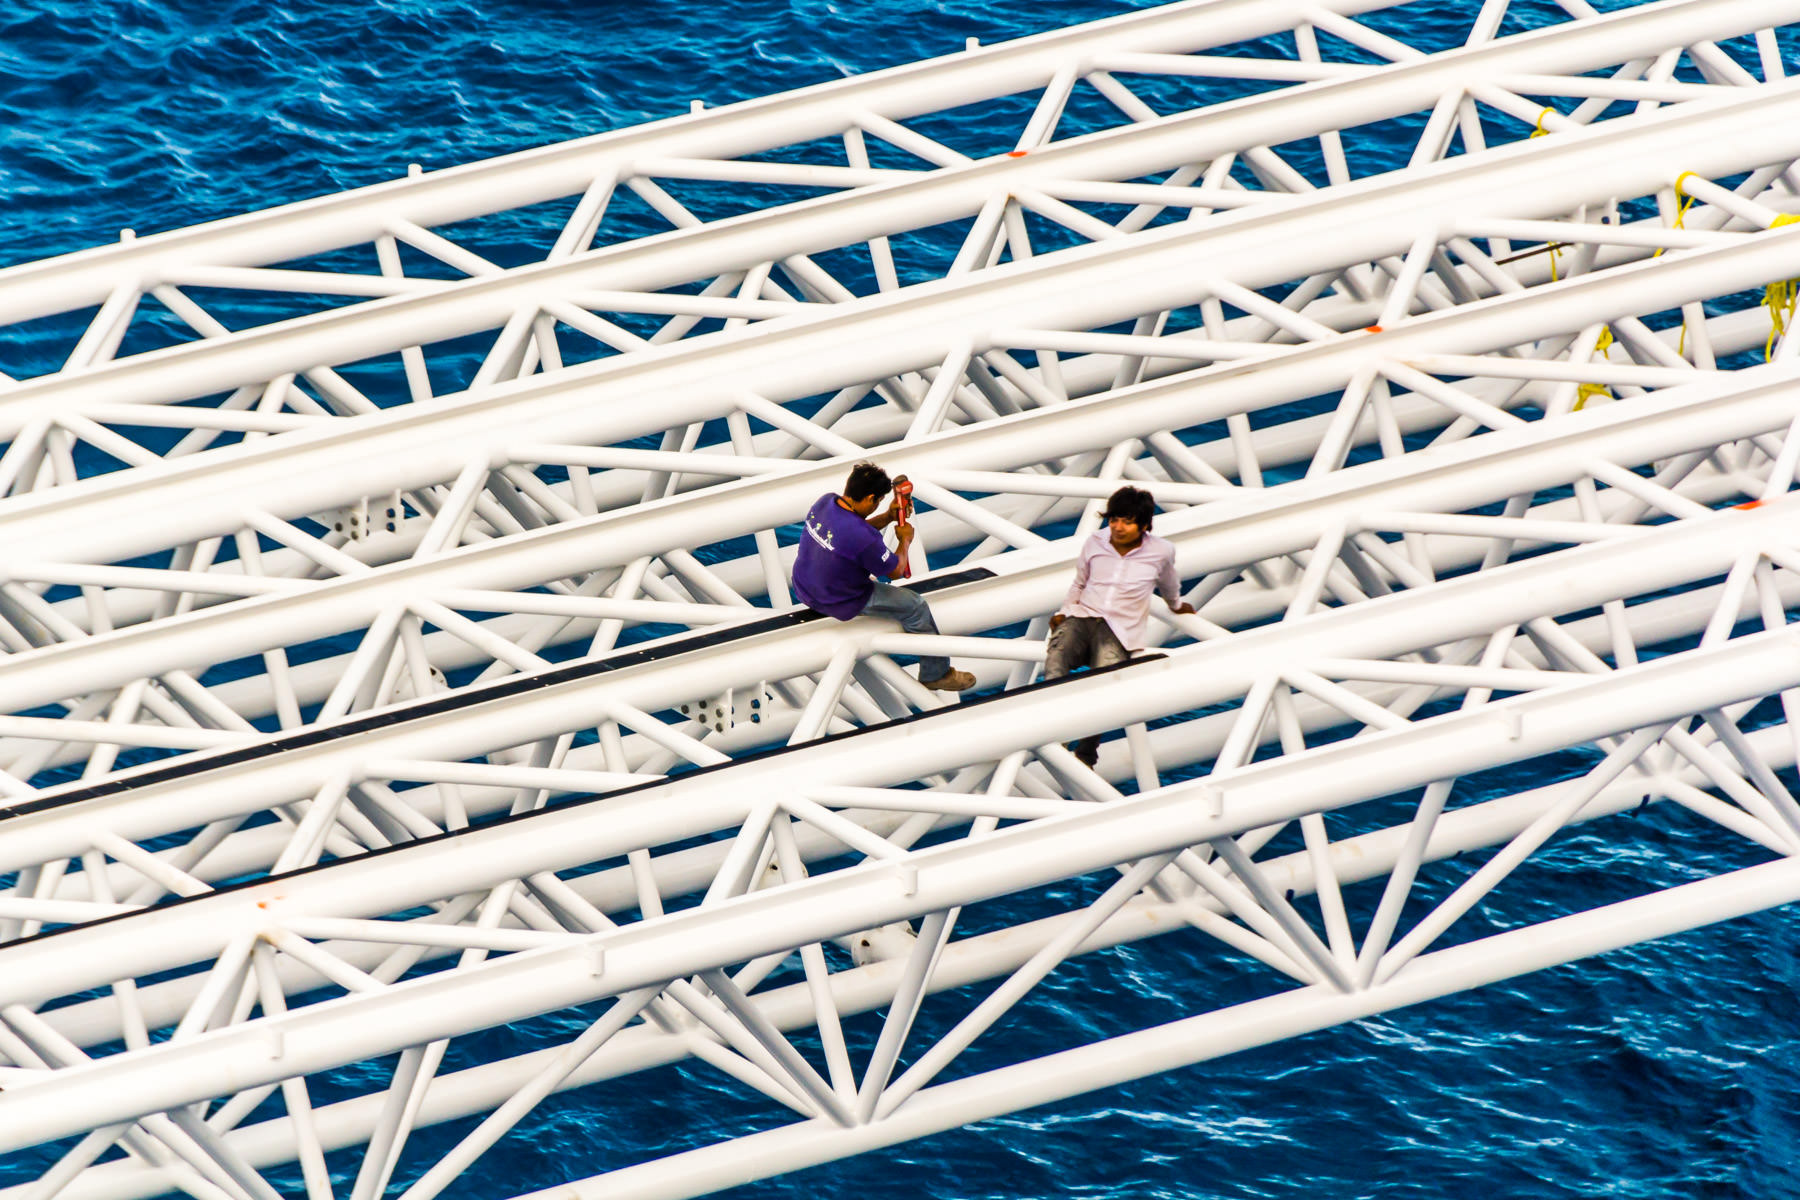 Workers on a dock structure in Cozumel, Mexico.